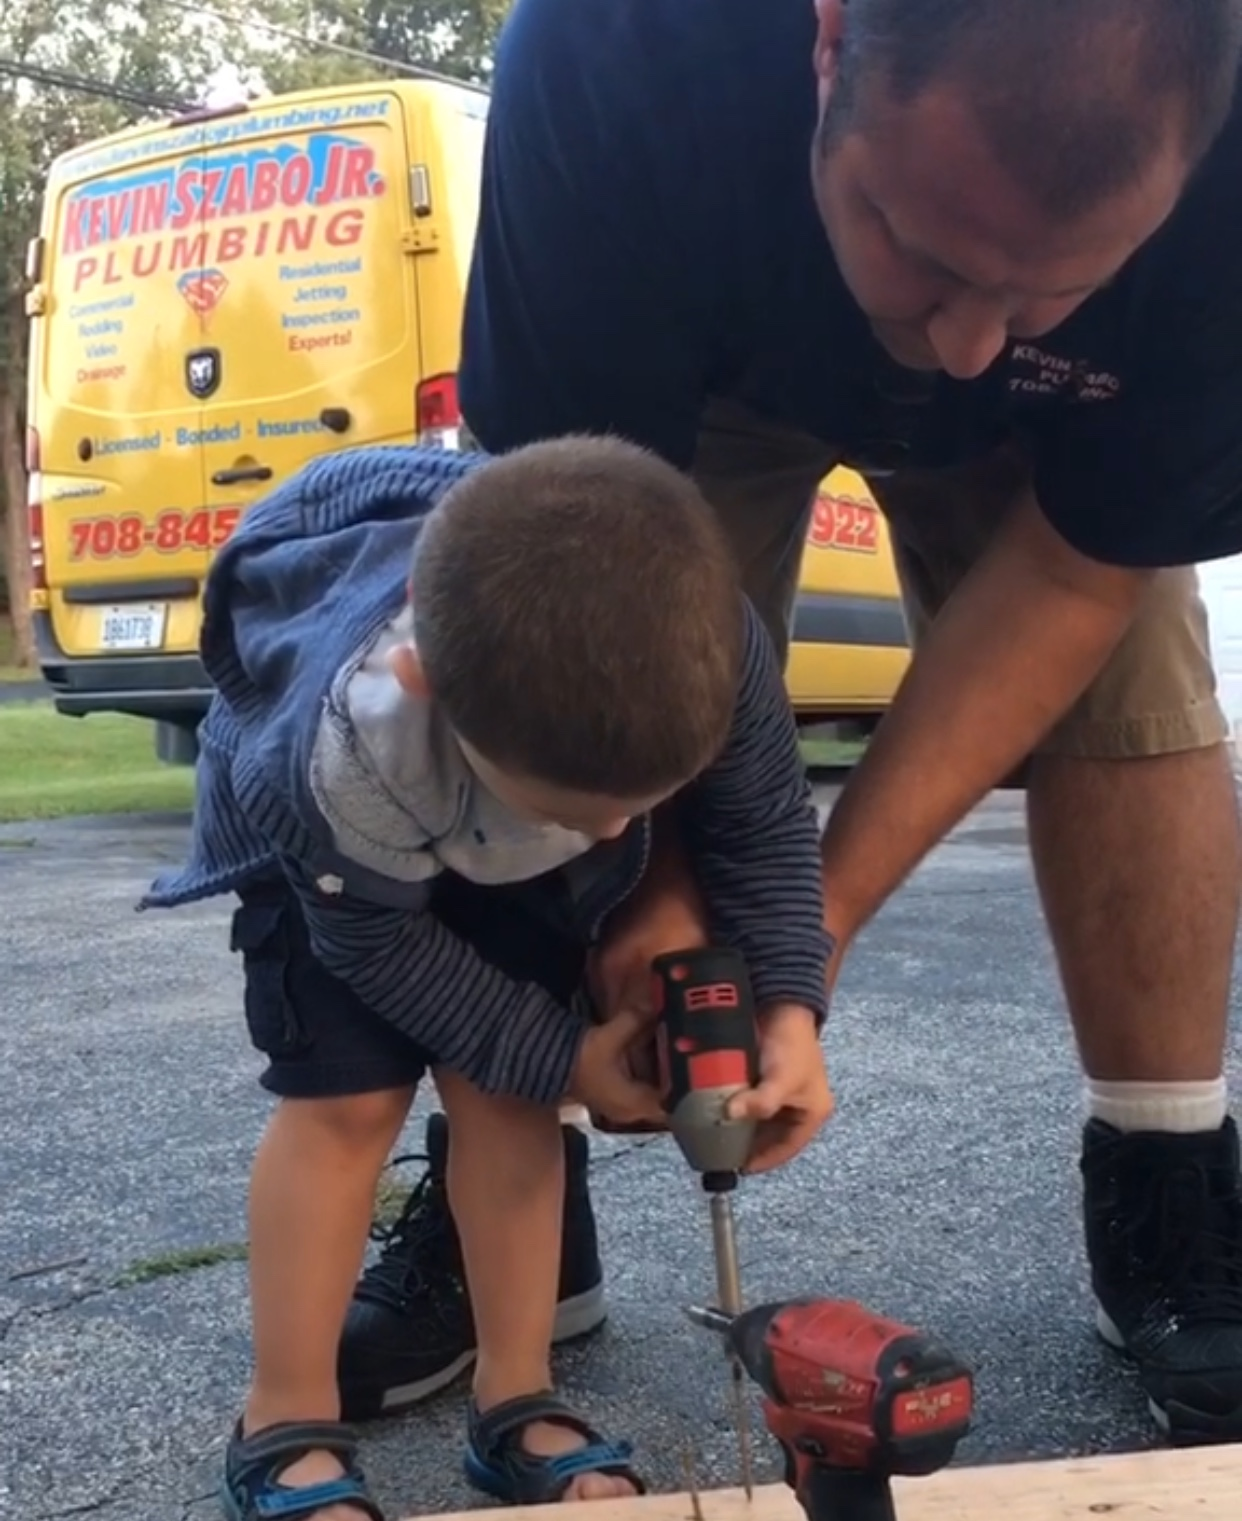 Orland Park Plumber and son work on home maintenance